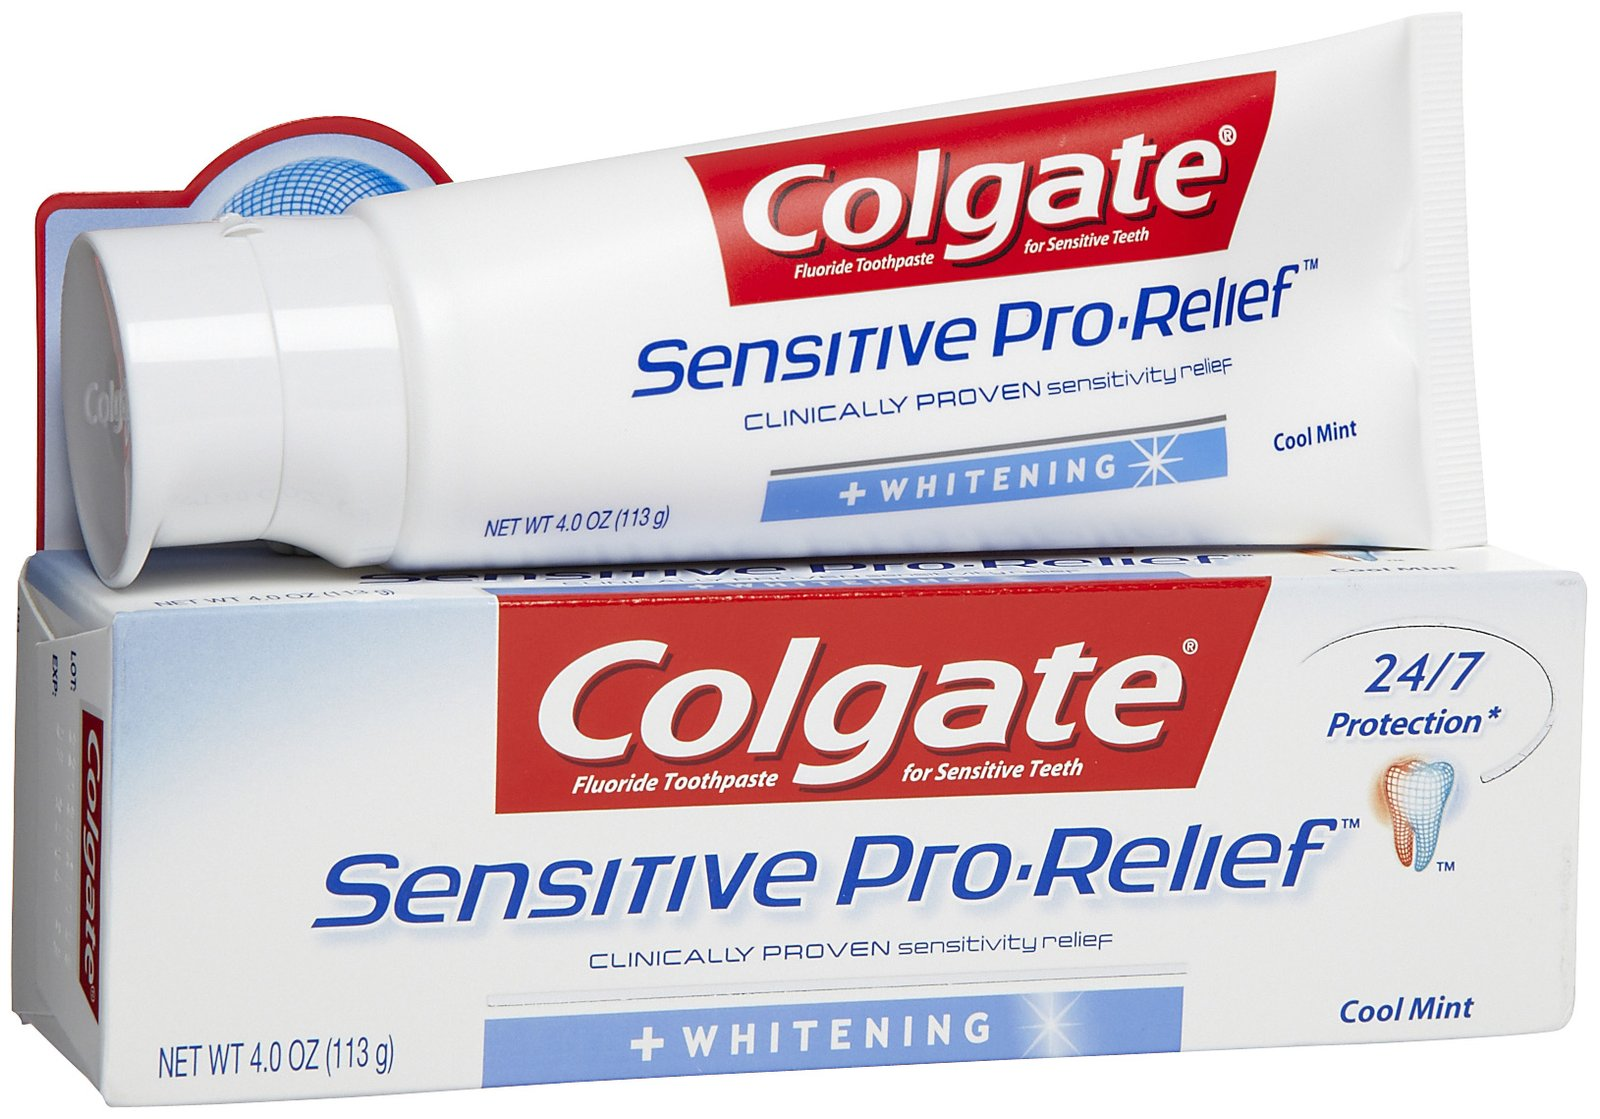 Colgate toothpaste gives you the ring of confedence - 2 part 9